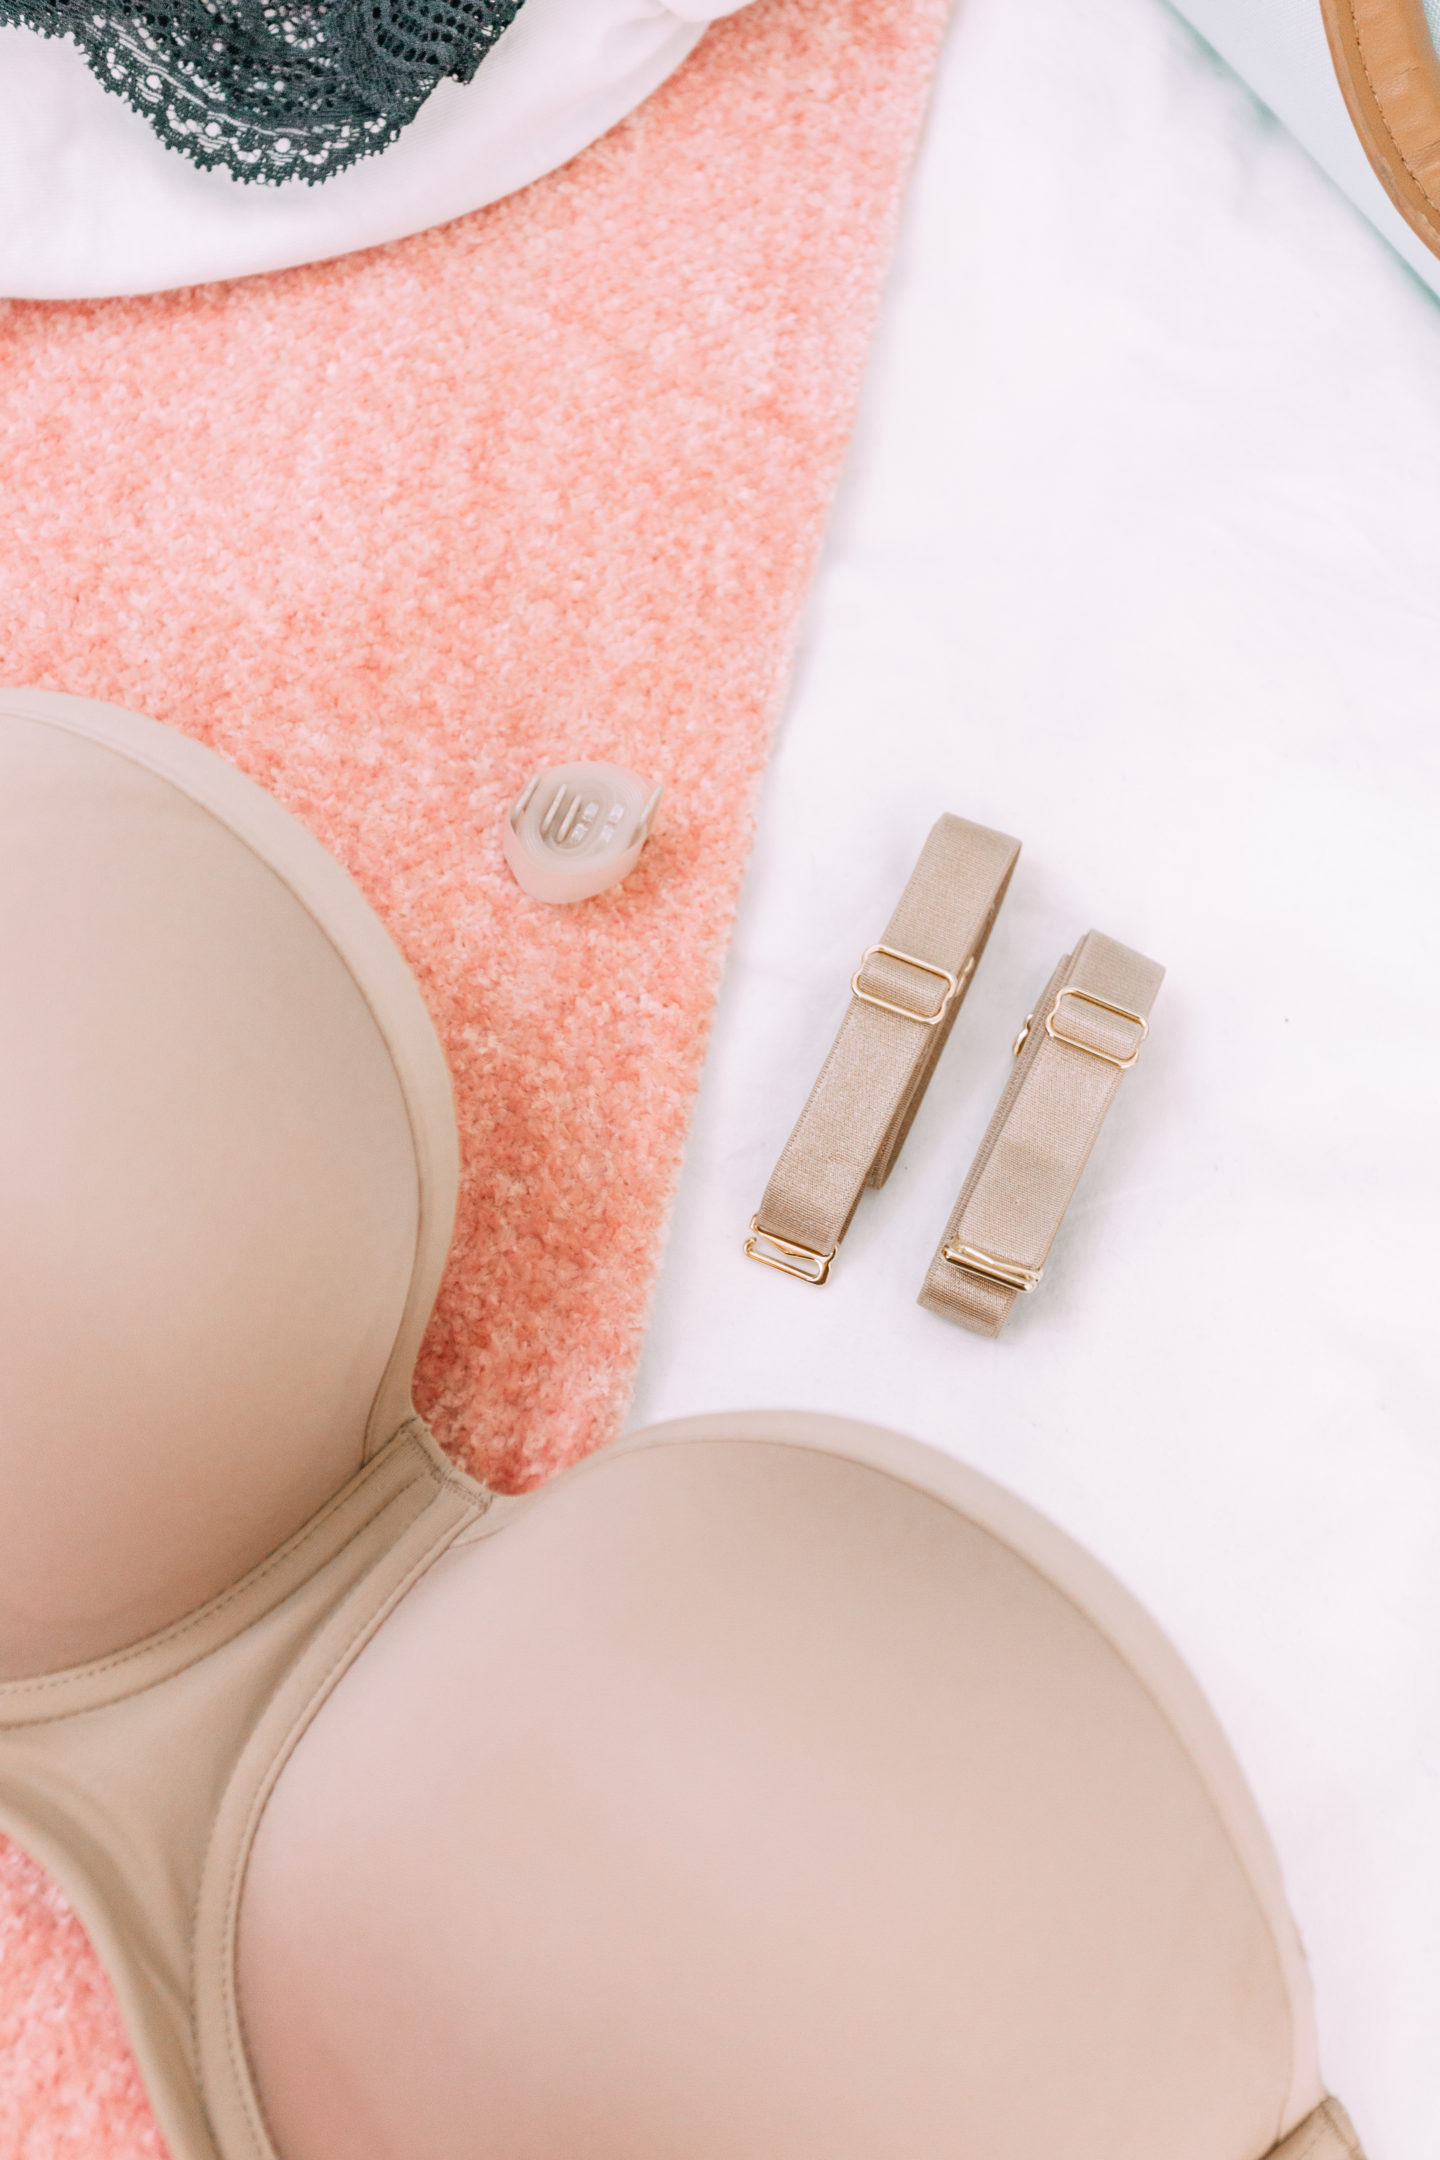 Thirdlove 24/7 Classic Strapless Bra   Packing for a Summer Vacation with Thirdlove